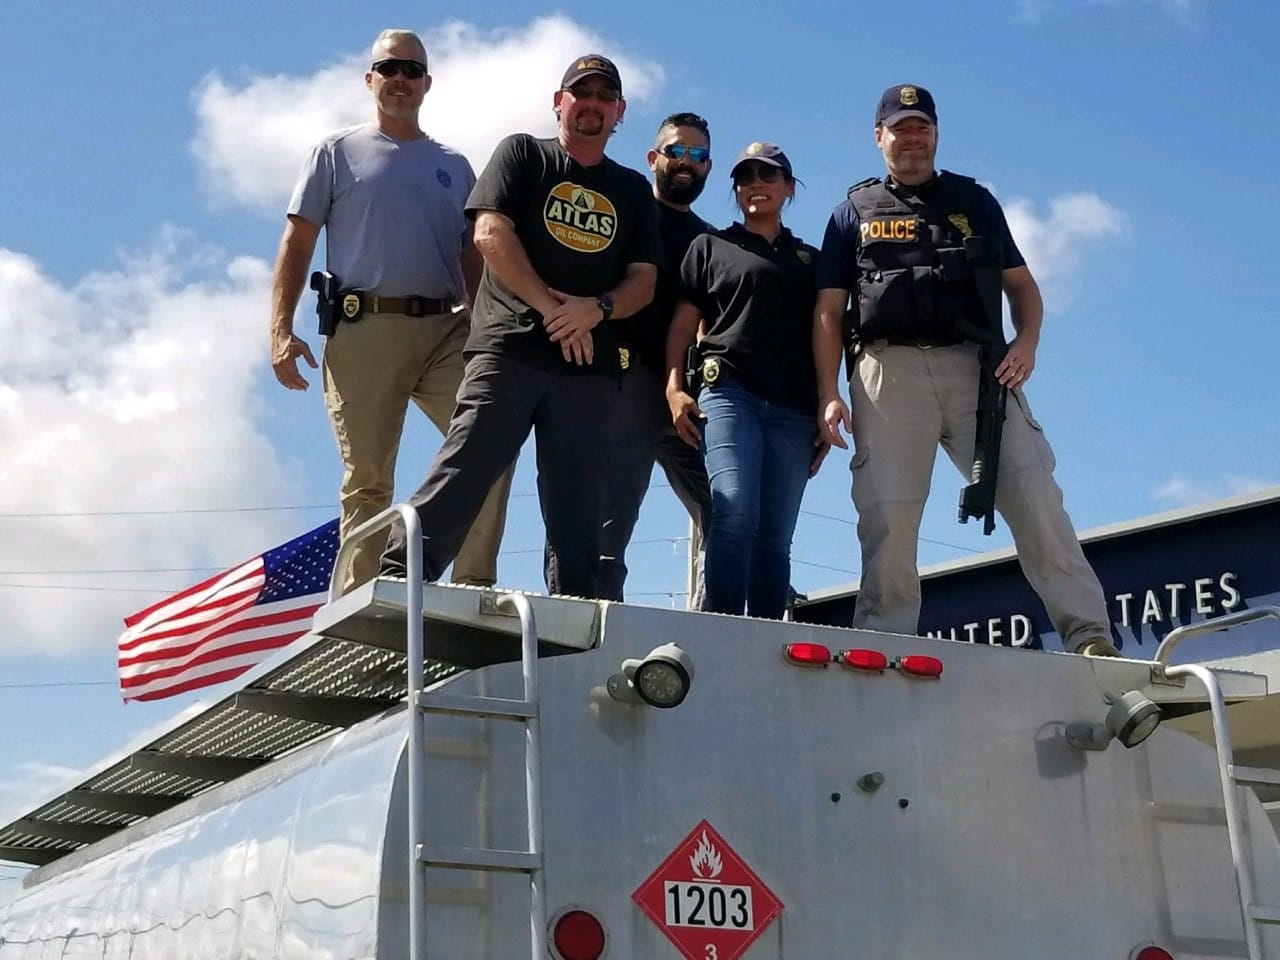 Atlas drivers stand with Puerto Rican police officers on top of an Atlas tanker.